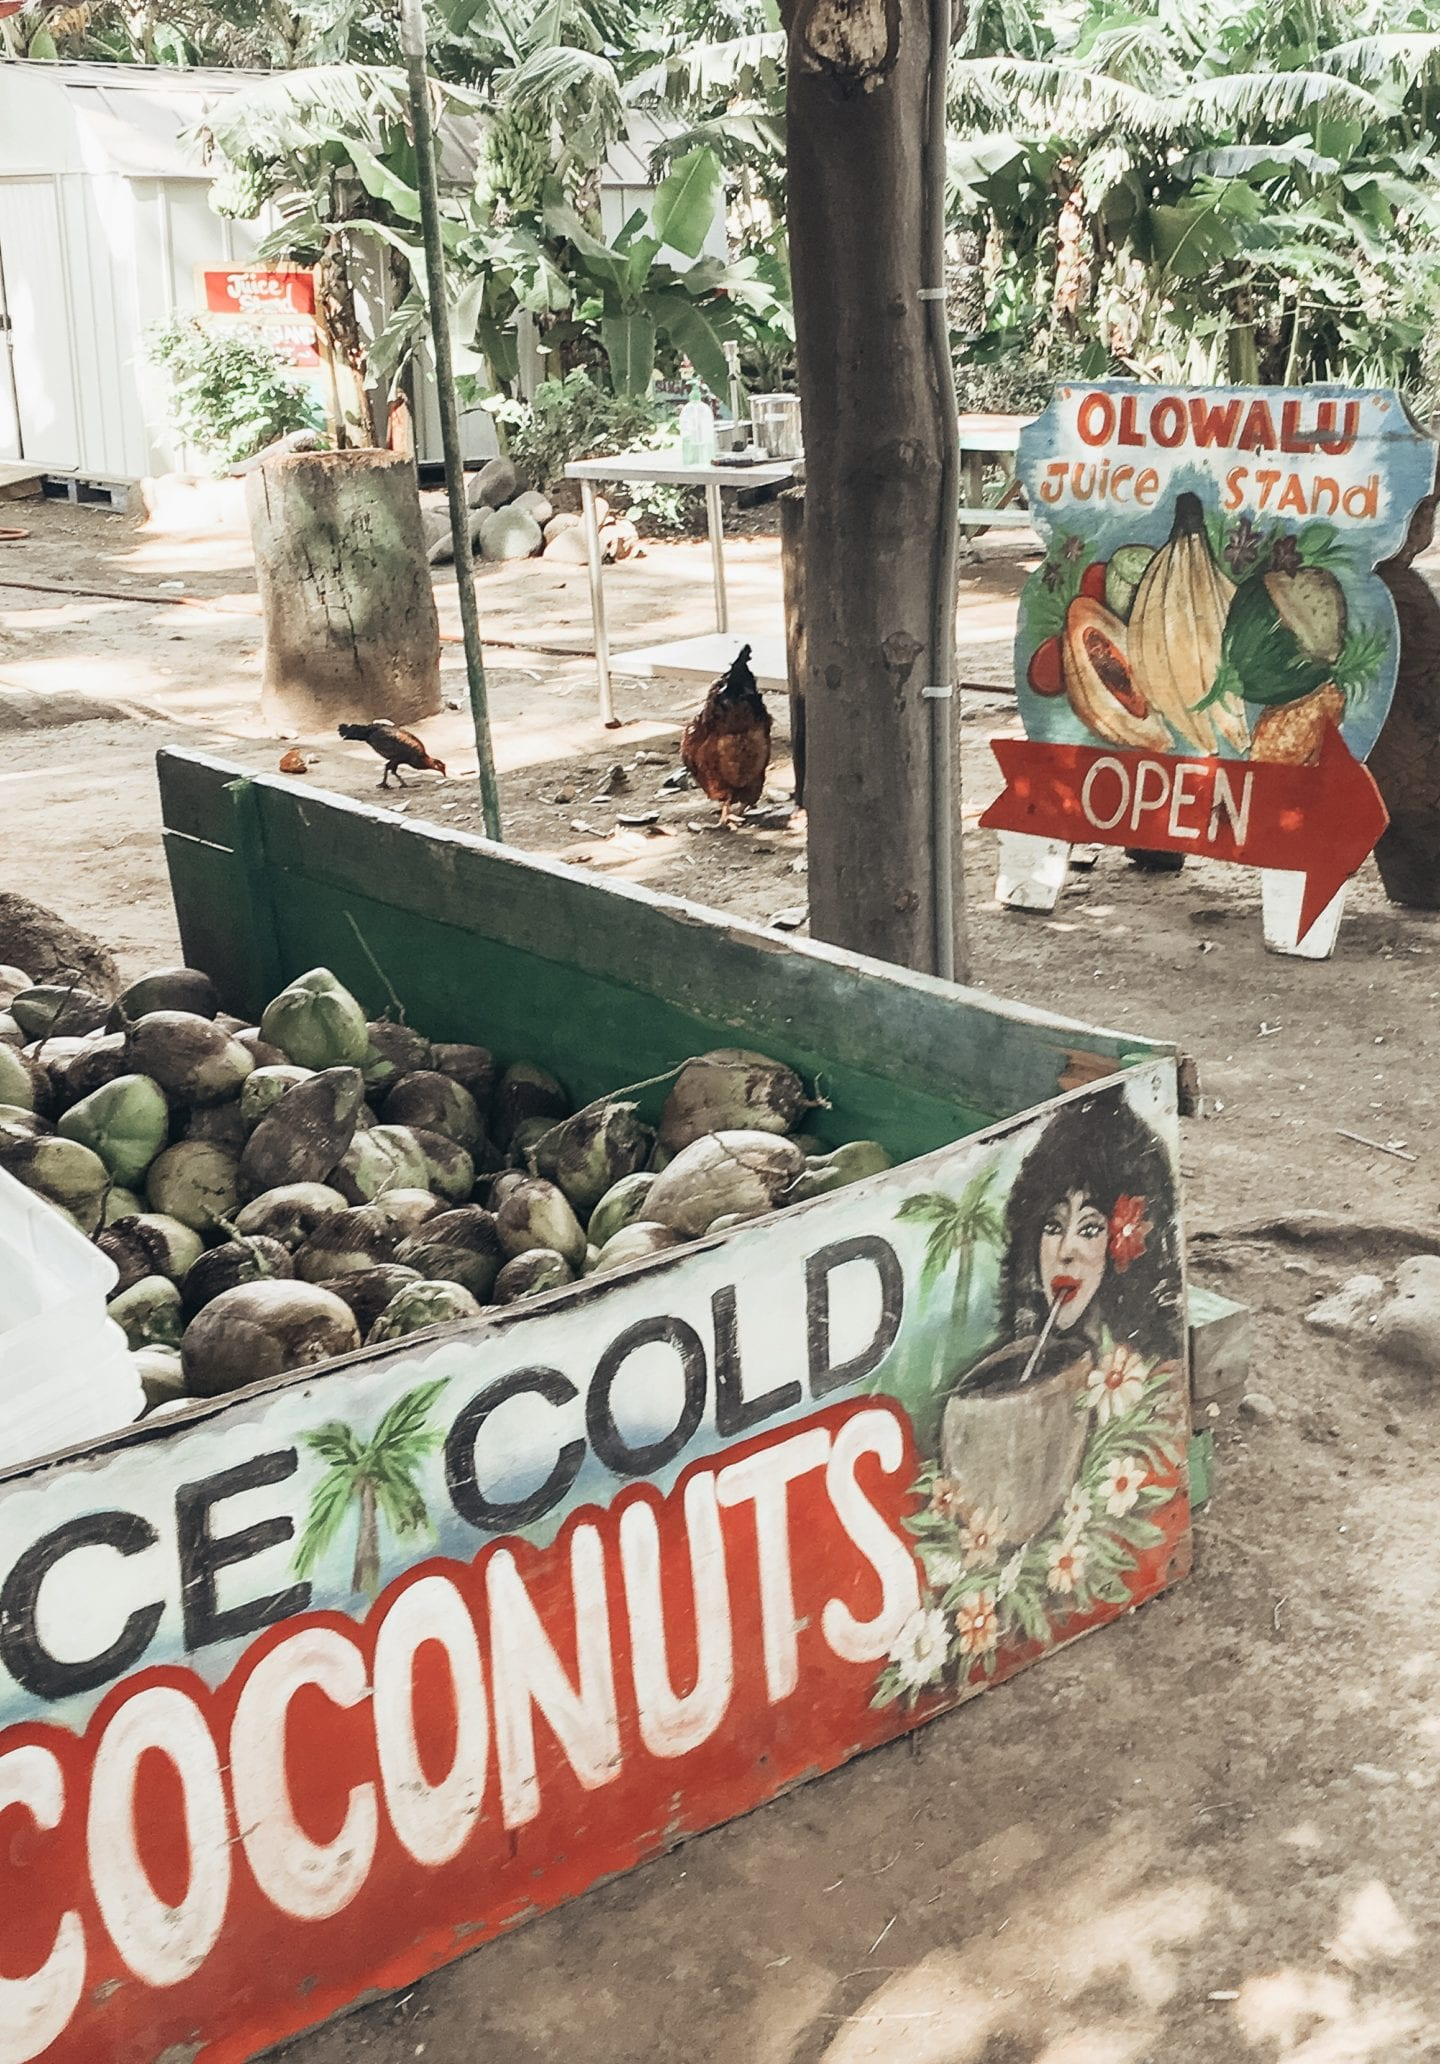 Olowalu Juice Stand I Maui travel guide I Hawaii Travel Guide I via justaddglam.com   Top Things to Do in Maui featured by top San Francisco travel blog, Just Add Glam: get a drink at Olowalu Juice Stand